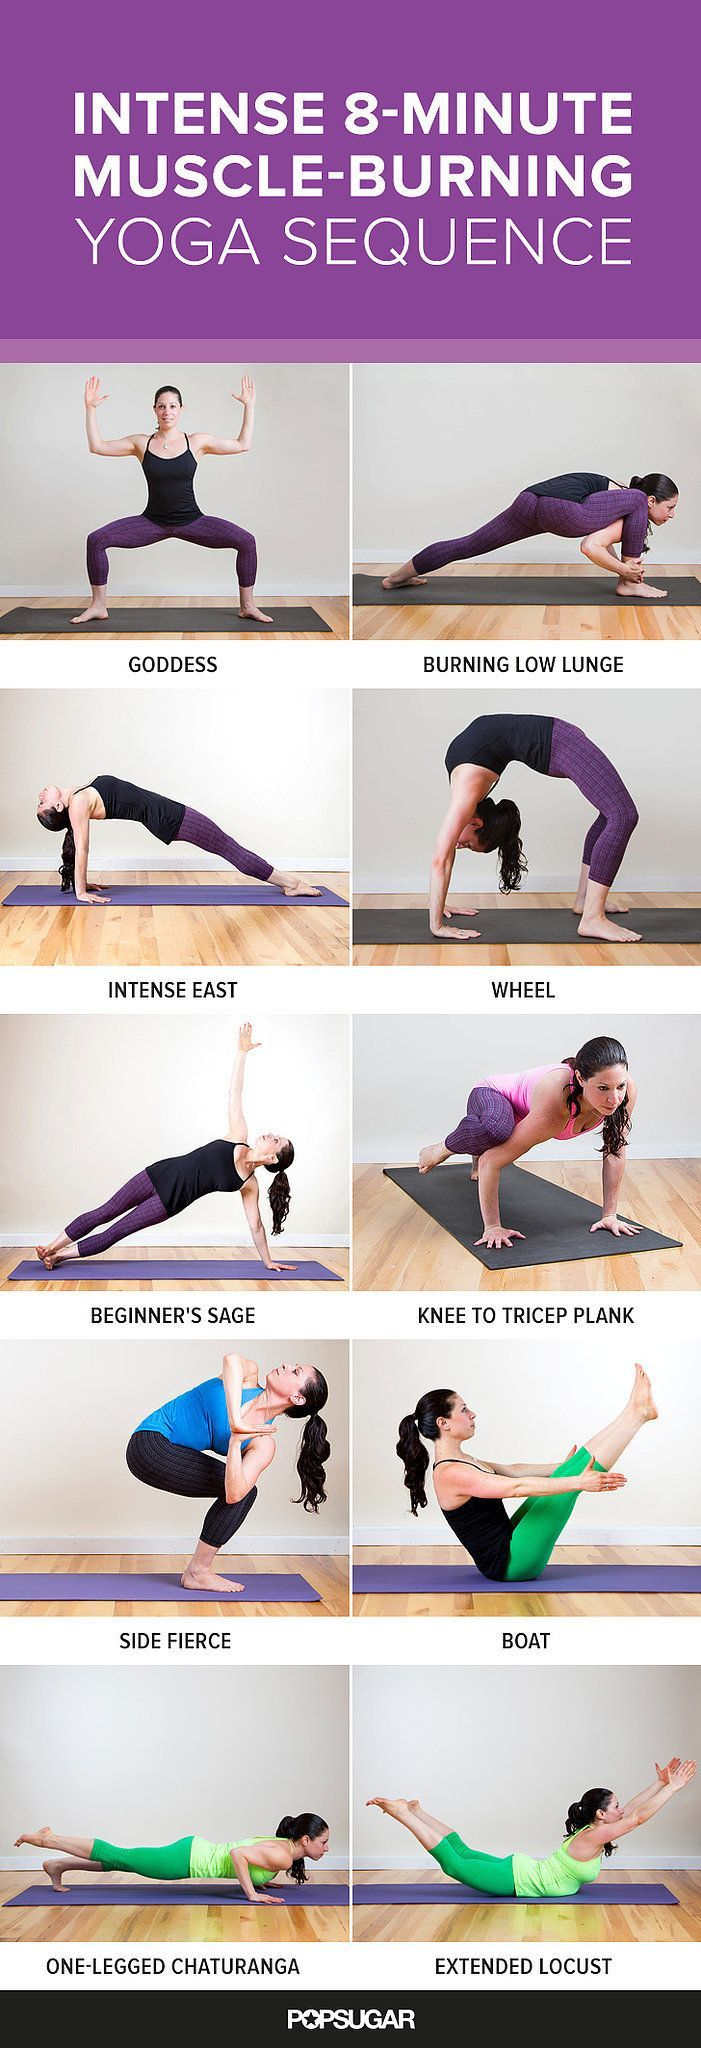 These yoga poses are not for wusses! Get ready to feel the burn instantly with this eight-minute sequence that's designed to burn every major part of your body.